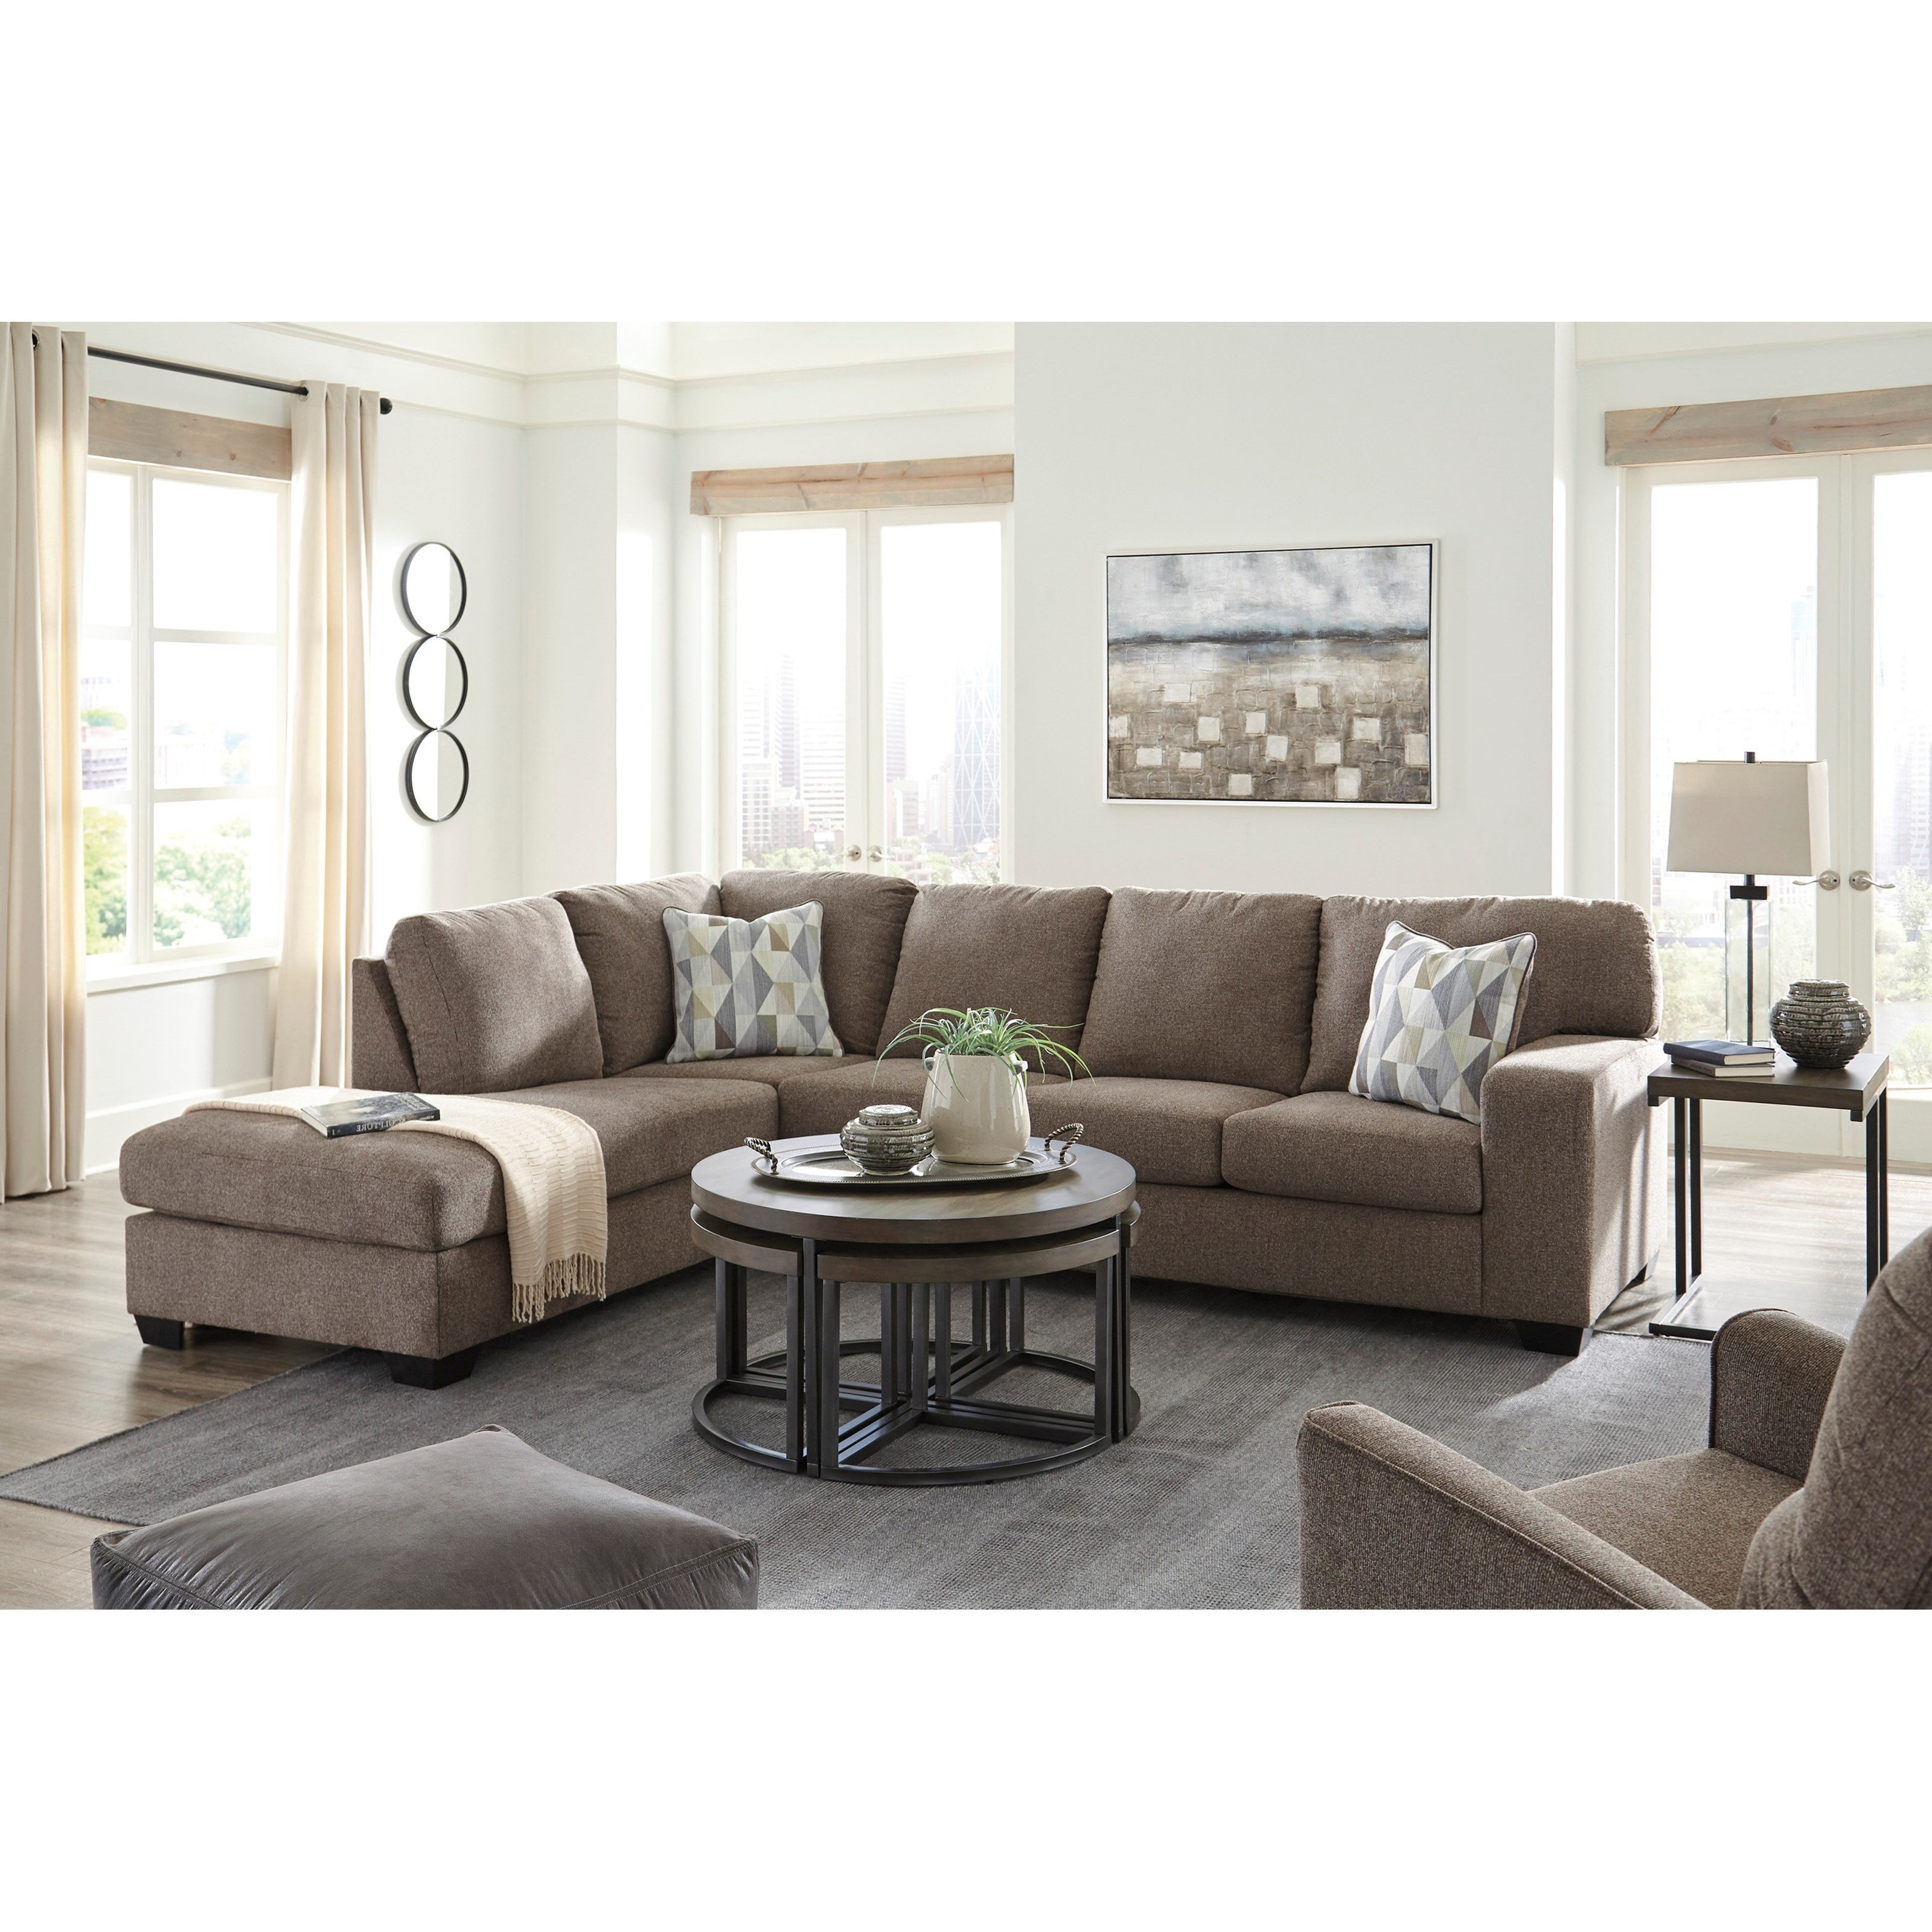 Dalhart Living Room Group by Benchcraft at Zak's Warehouse Clearance Center